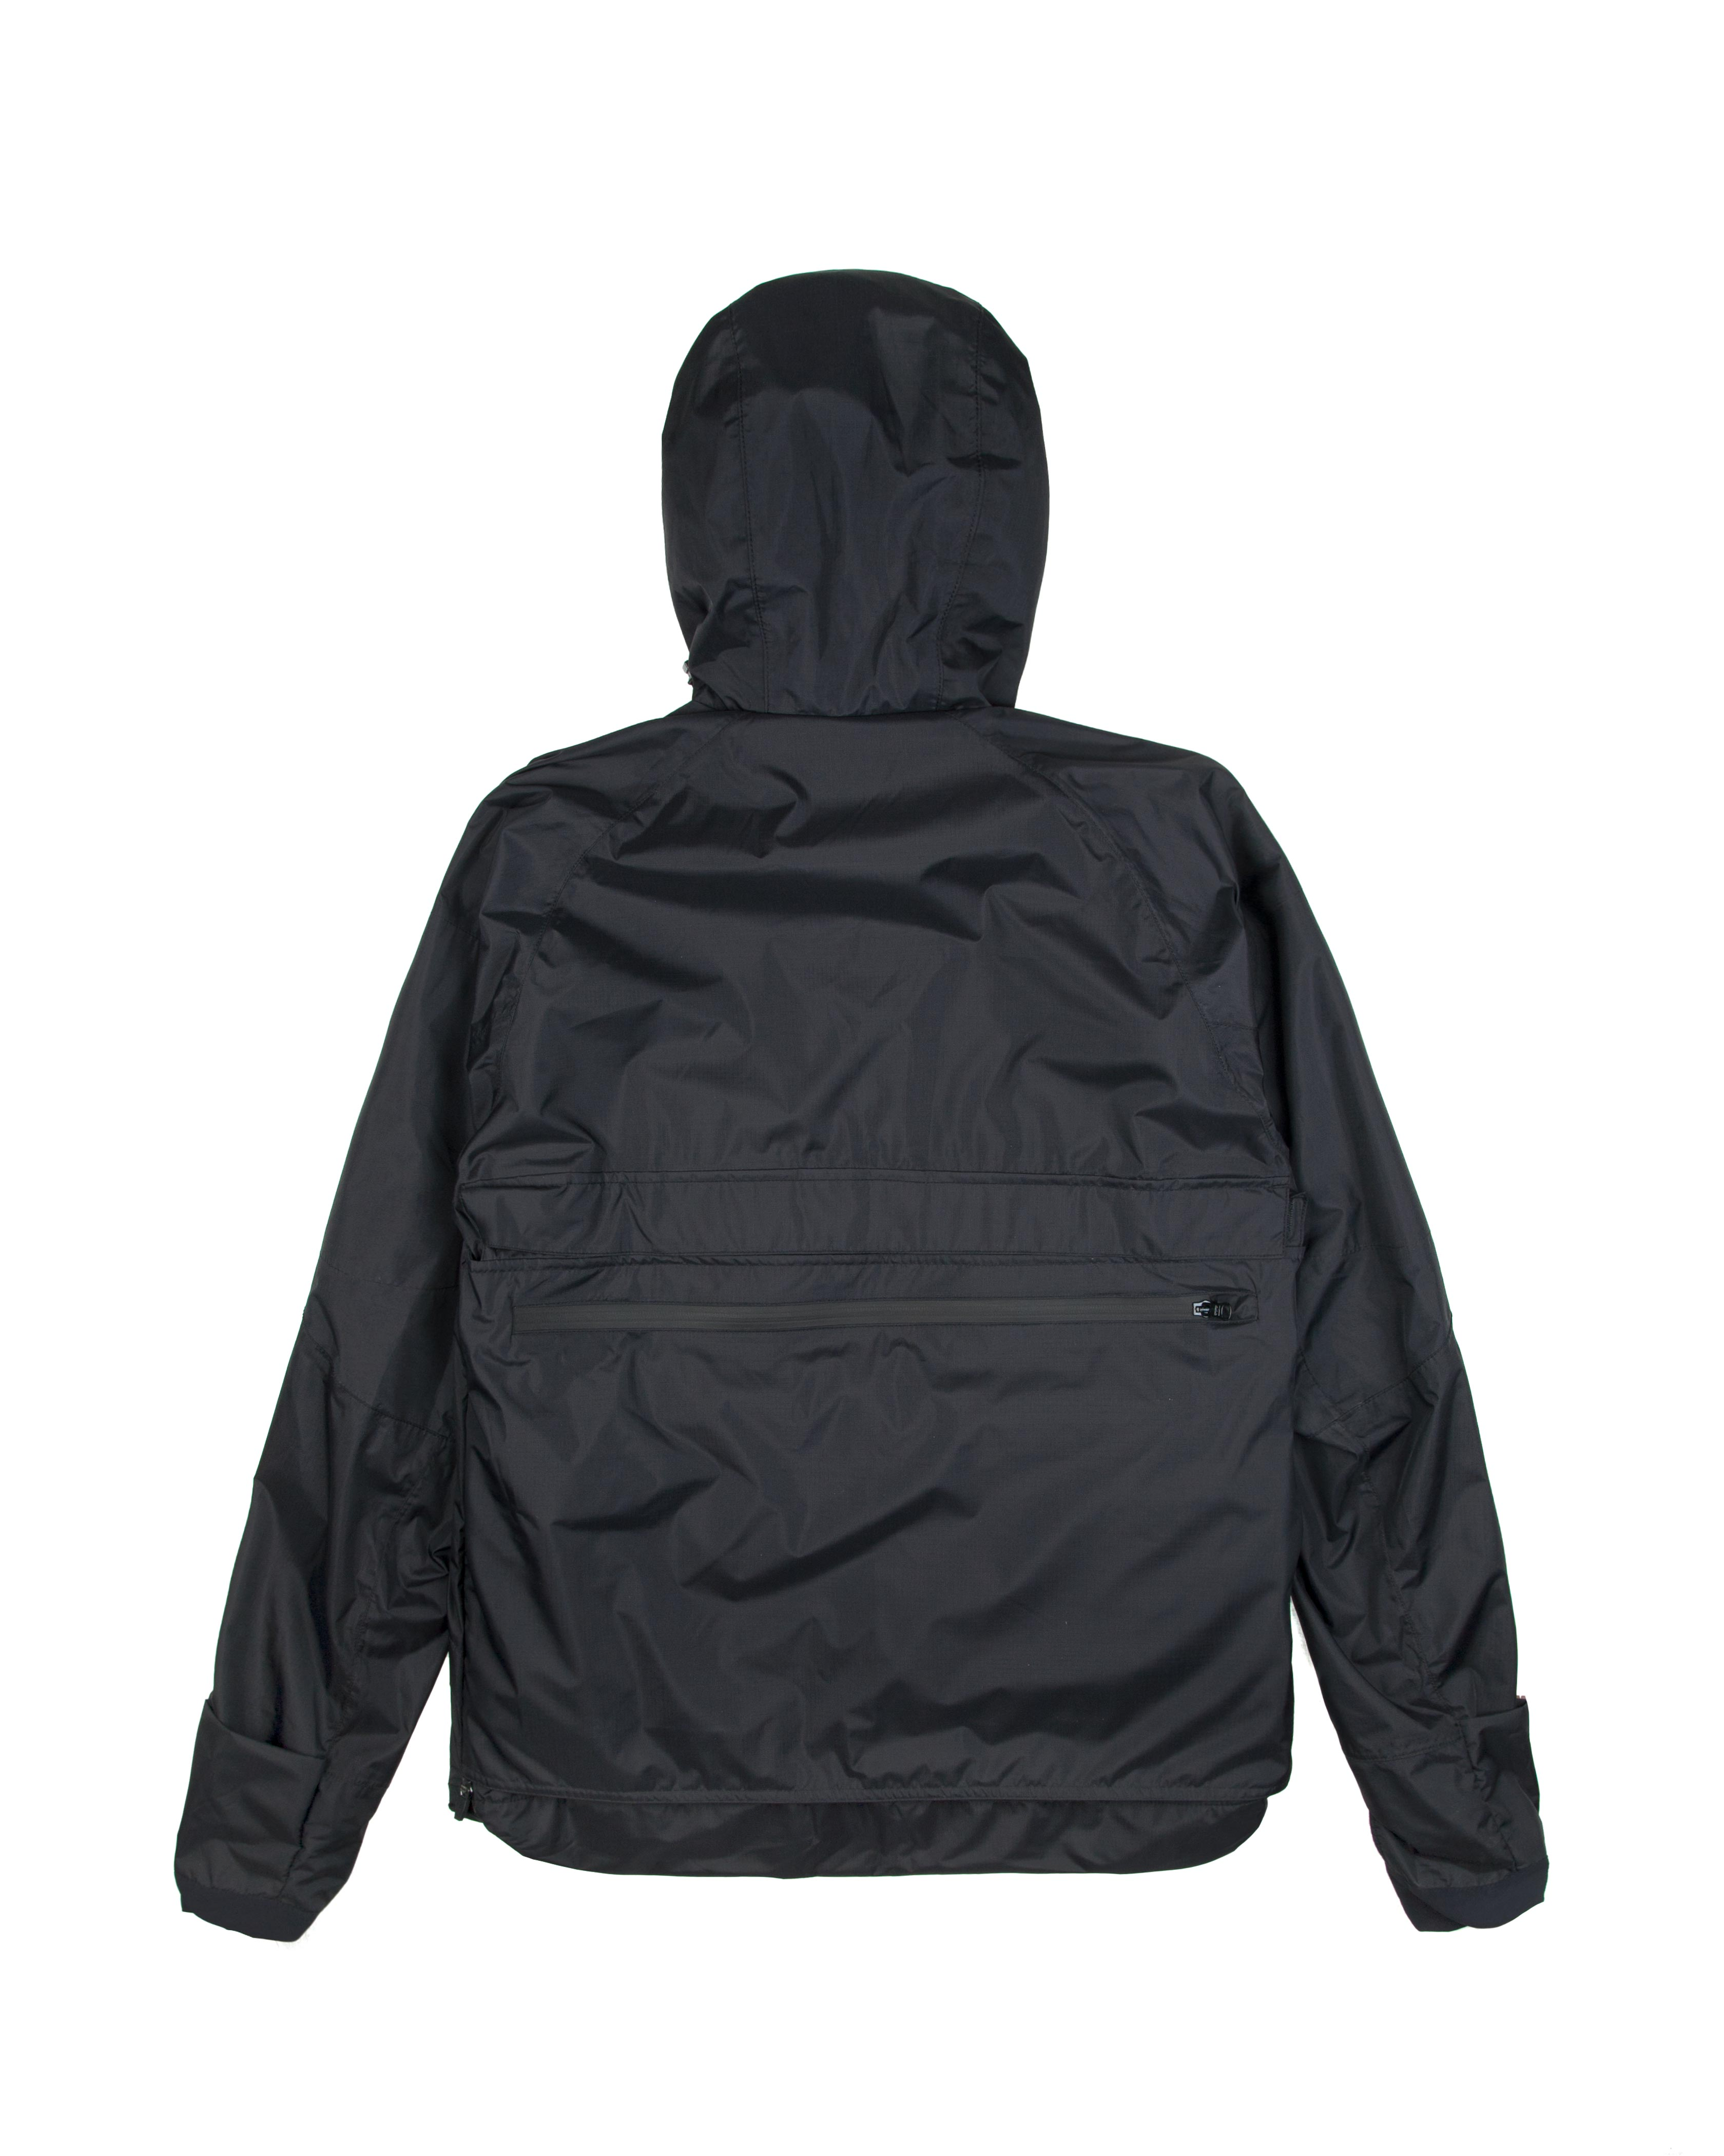 Анорак Riot Division Urban Transformer Jacket/Bag Modified2 Black